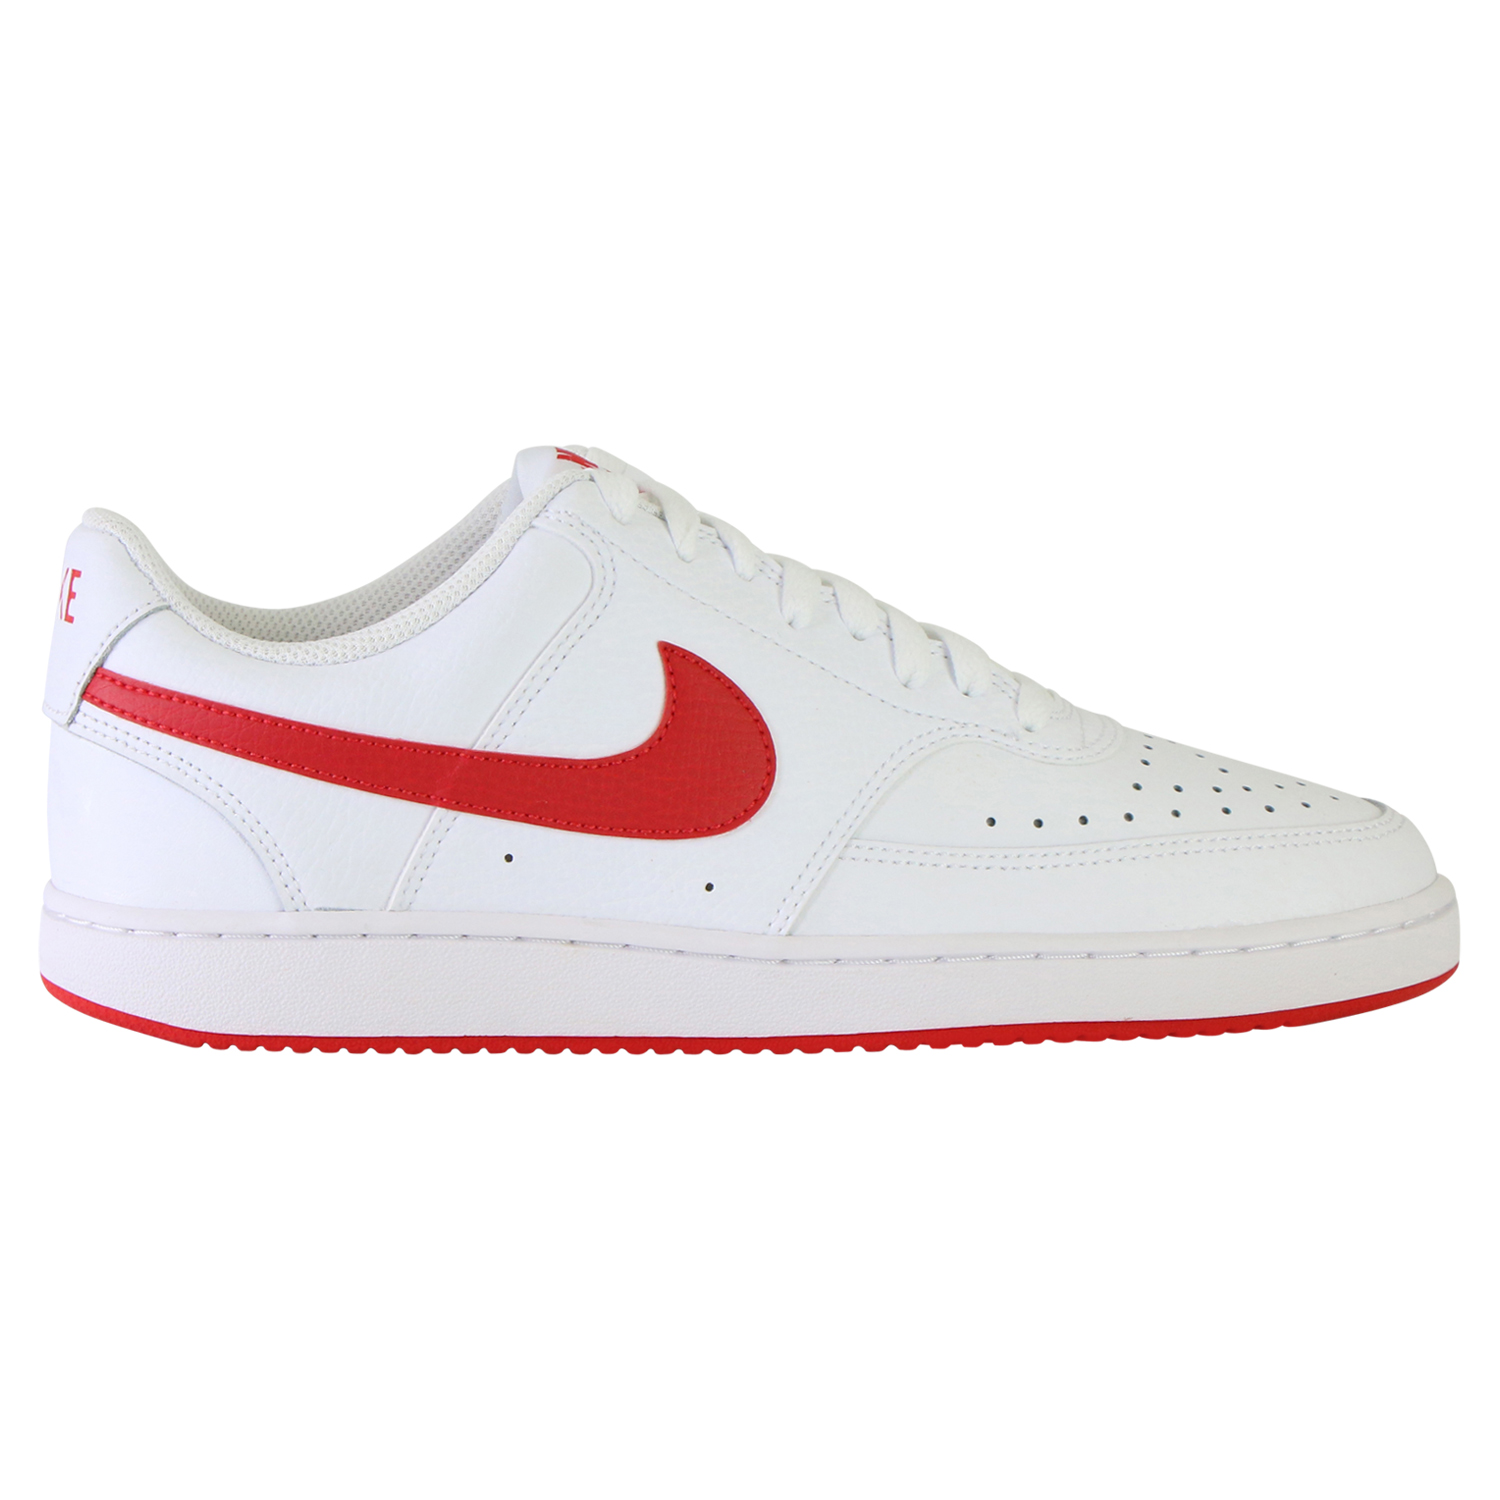 Nike Court Vision Low Women's Shoes, Size: 6.5, White | Nike